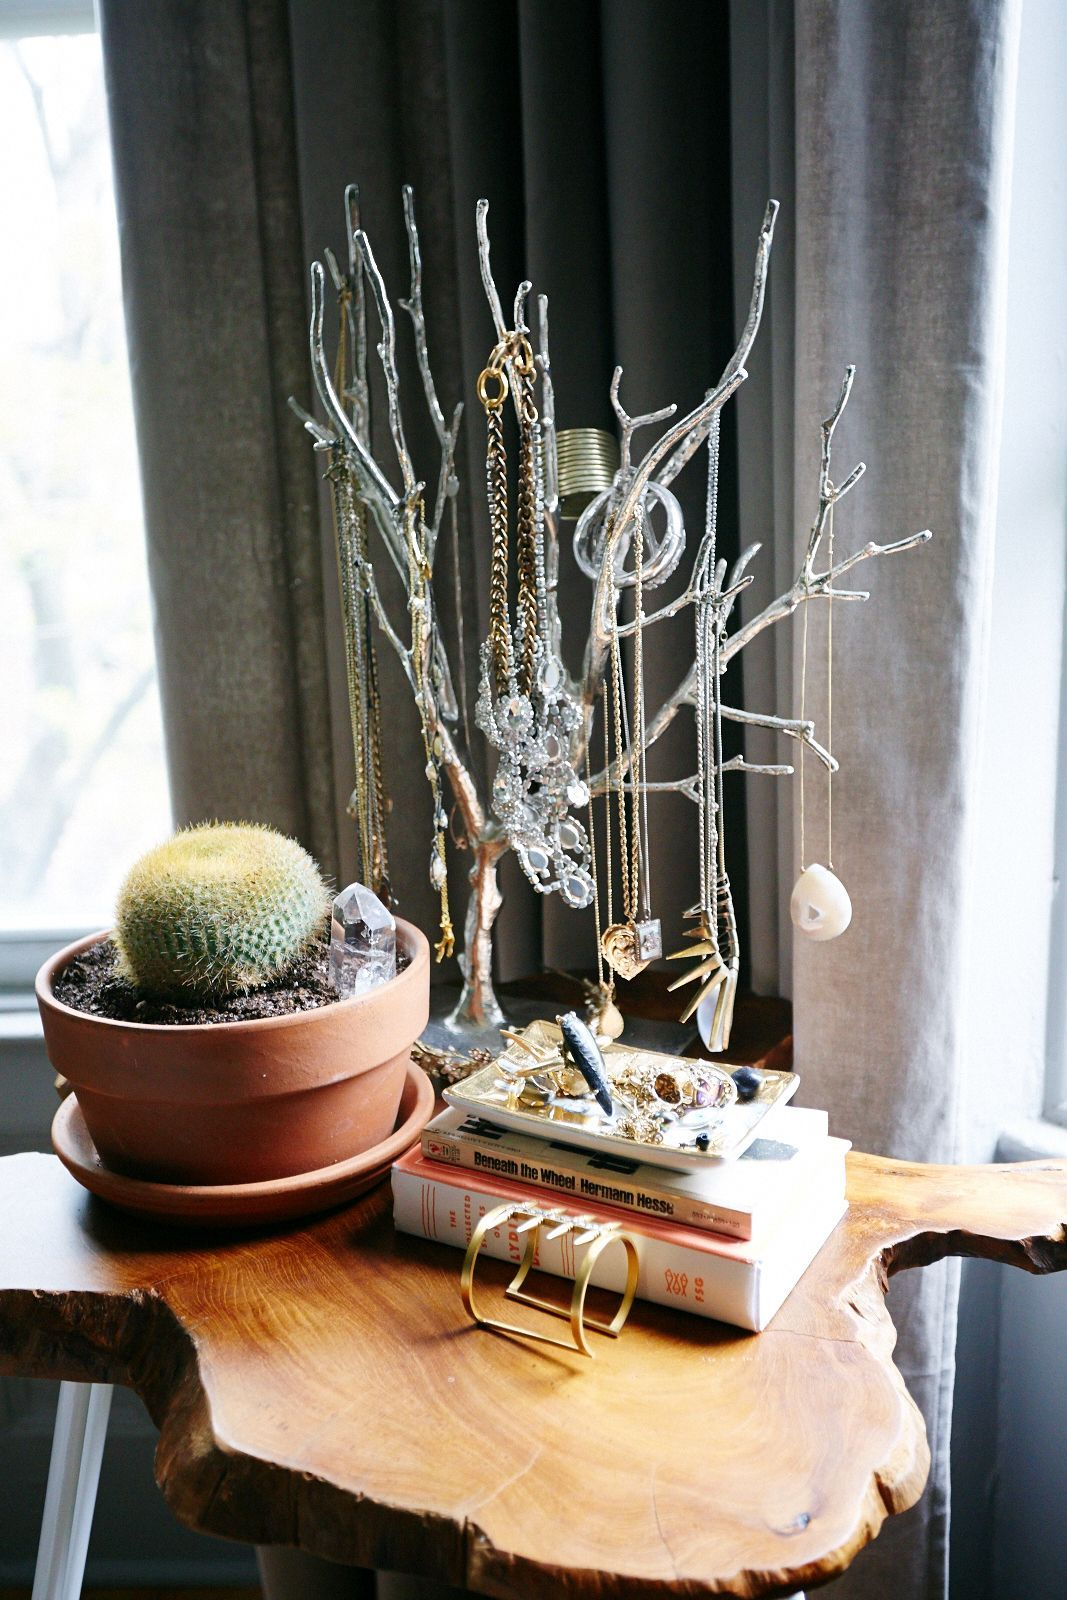 How To Make Your Place Look AWESOME #refinery29  http://www.refinery29.com/69347#slide-17  Try small pieces with big impact.  The rough-hewn wood-slab side table and sliver jewelry tree keep Abby's things organized, yet playful looking. Each one's got an earthy vibe and together, with the potted cactus and crystal, the display is almost boutique-like....